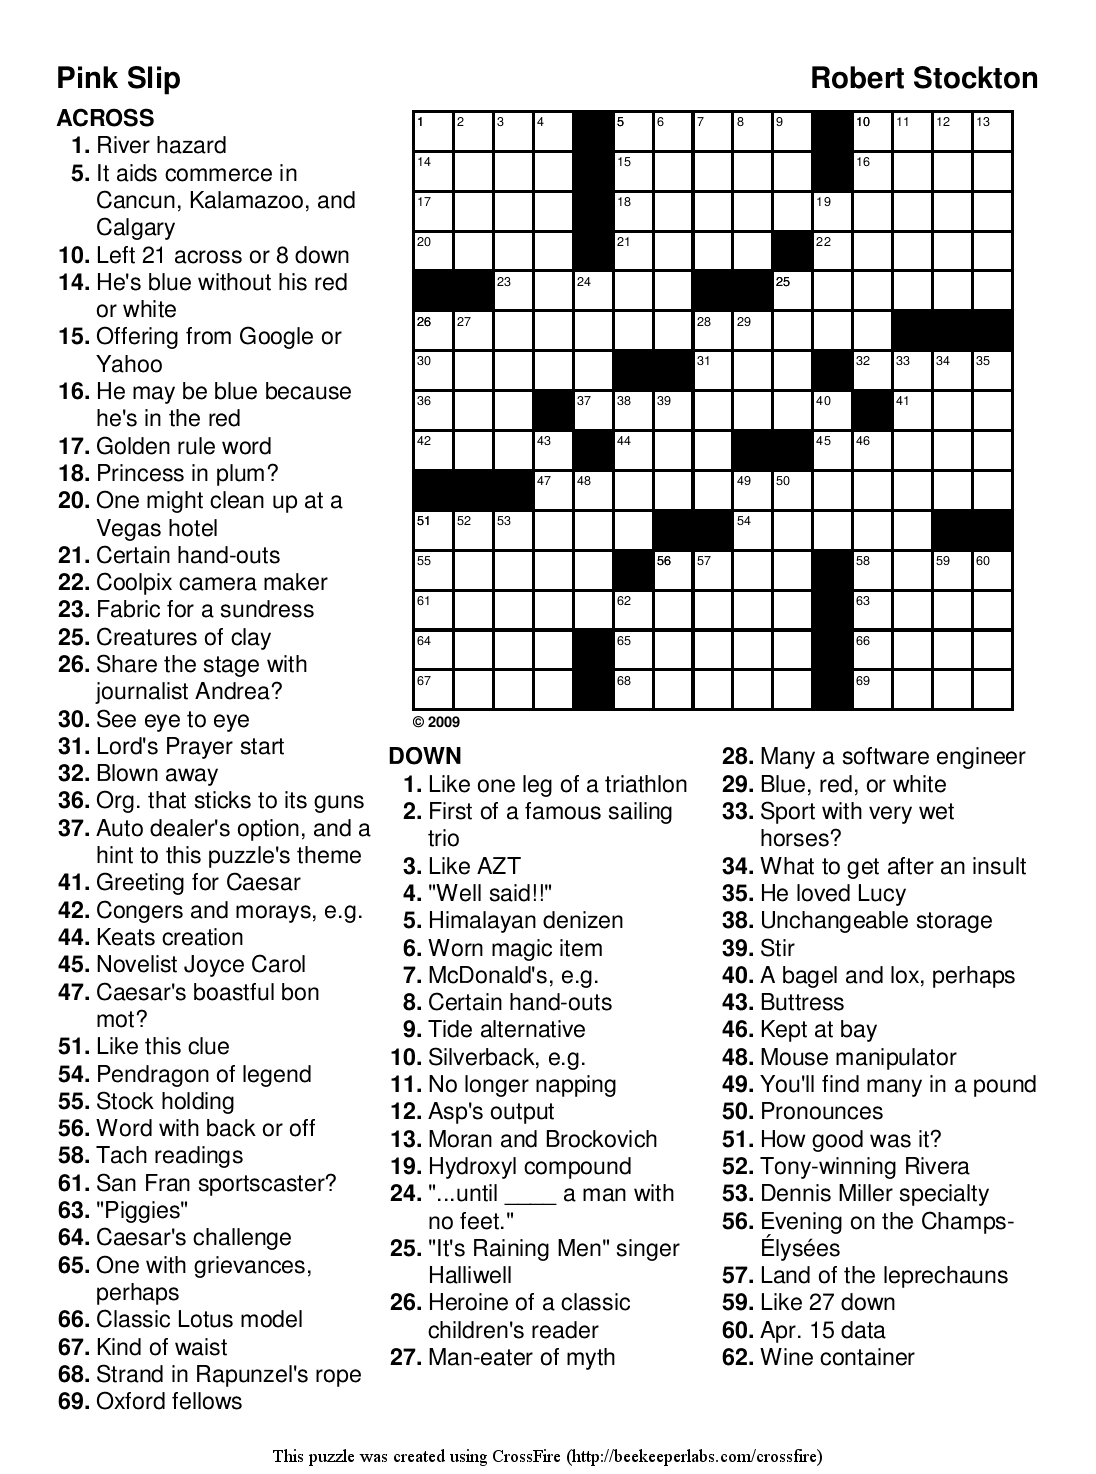 Cherise (Galisonb) On Pinterest - Printable Crossword Puzzles In Afrikaans